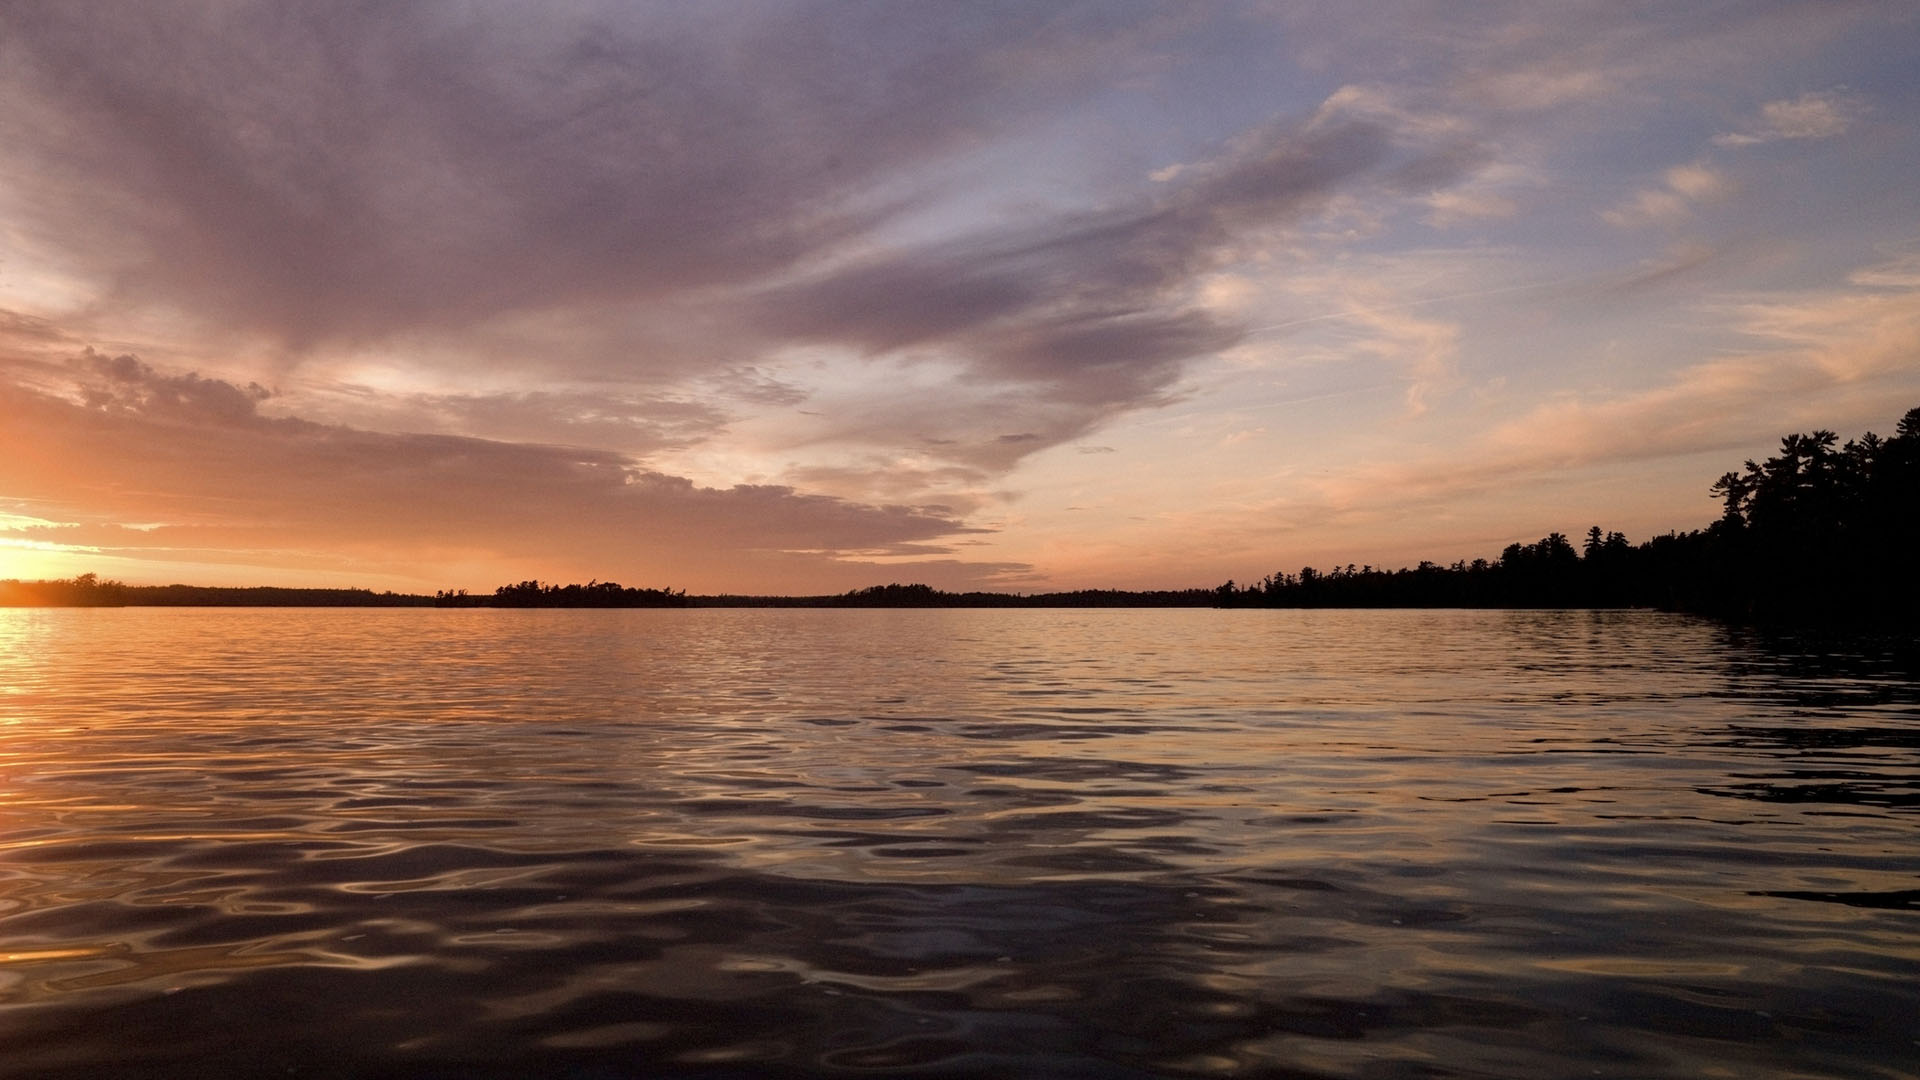 Lake of the Woods, Ontario, Canada; Twilight over still lake water